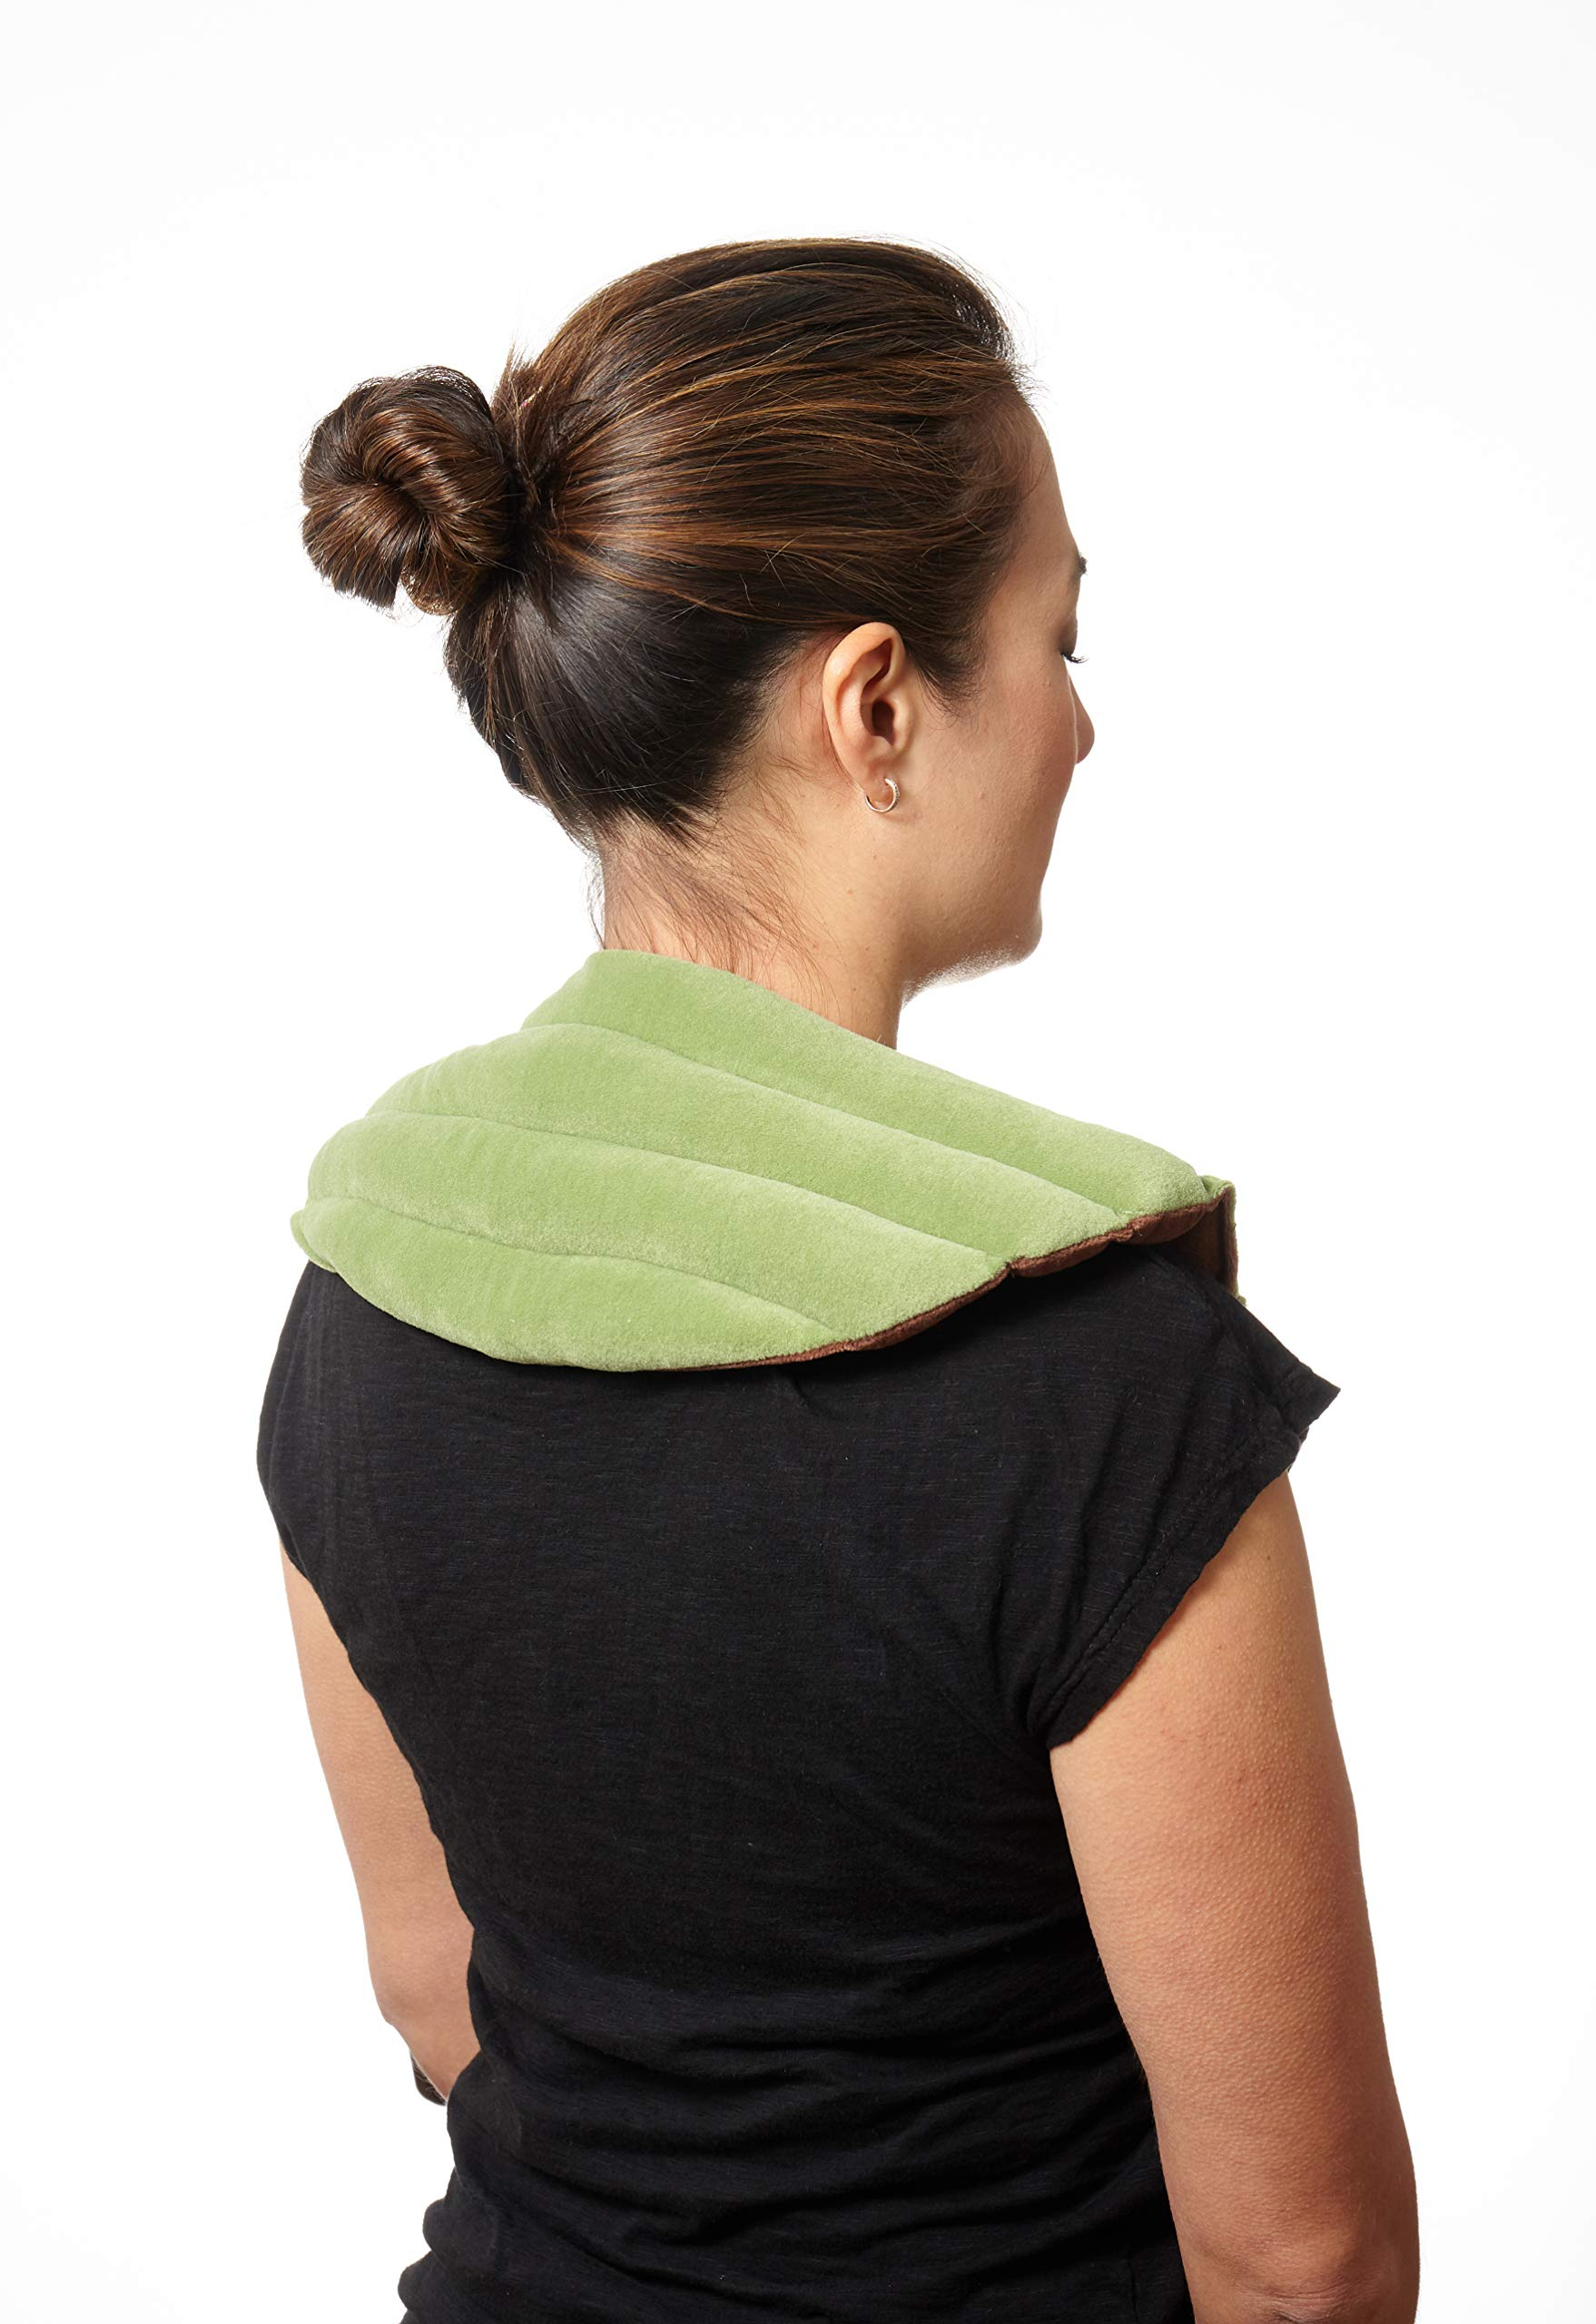 Dreamtime Spa Comforts Microwaveable Shoulder Wrap with Aromatherapy, Neck Shoulder Relaxer, Hot or Cold Neck Wrap Lavender and Peppermint Herbal Stress Relief, Green/Brown by Spa Comforts